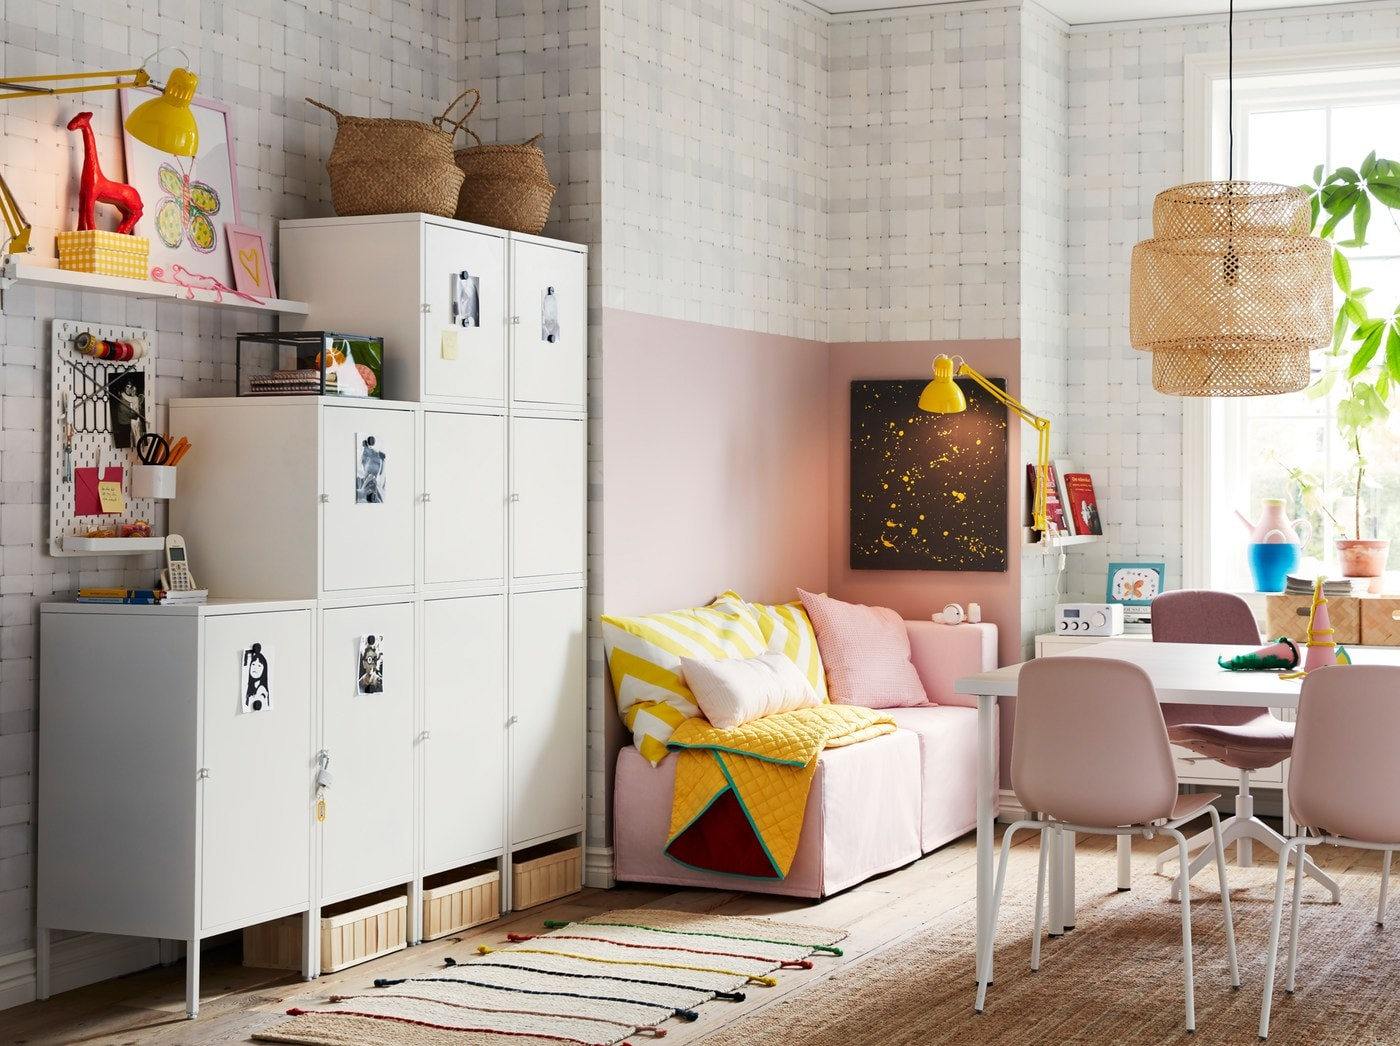 White HÄLLAN cabinets placed against a wall and used for storage in a compact pink, white and yellow family living space.